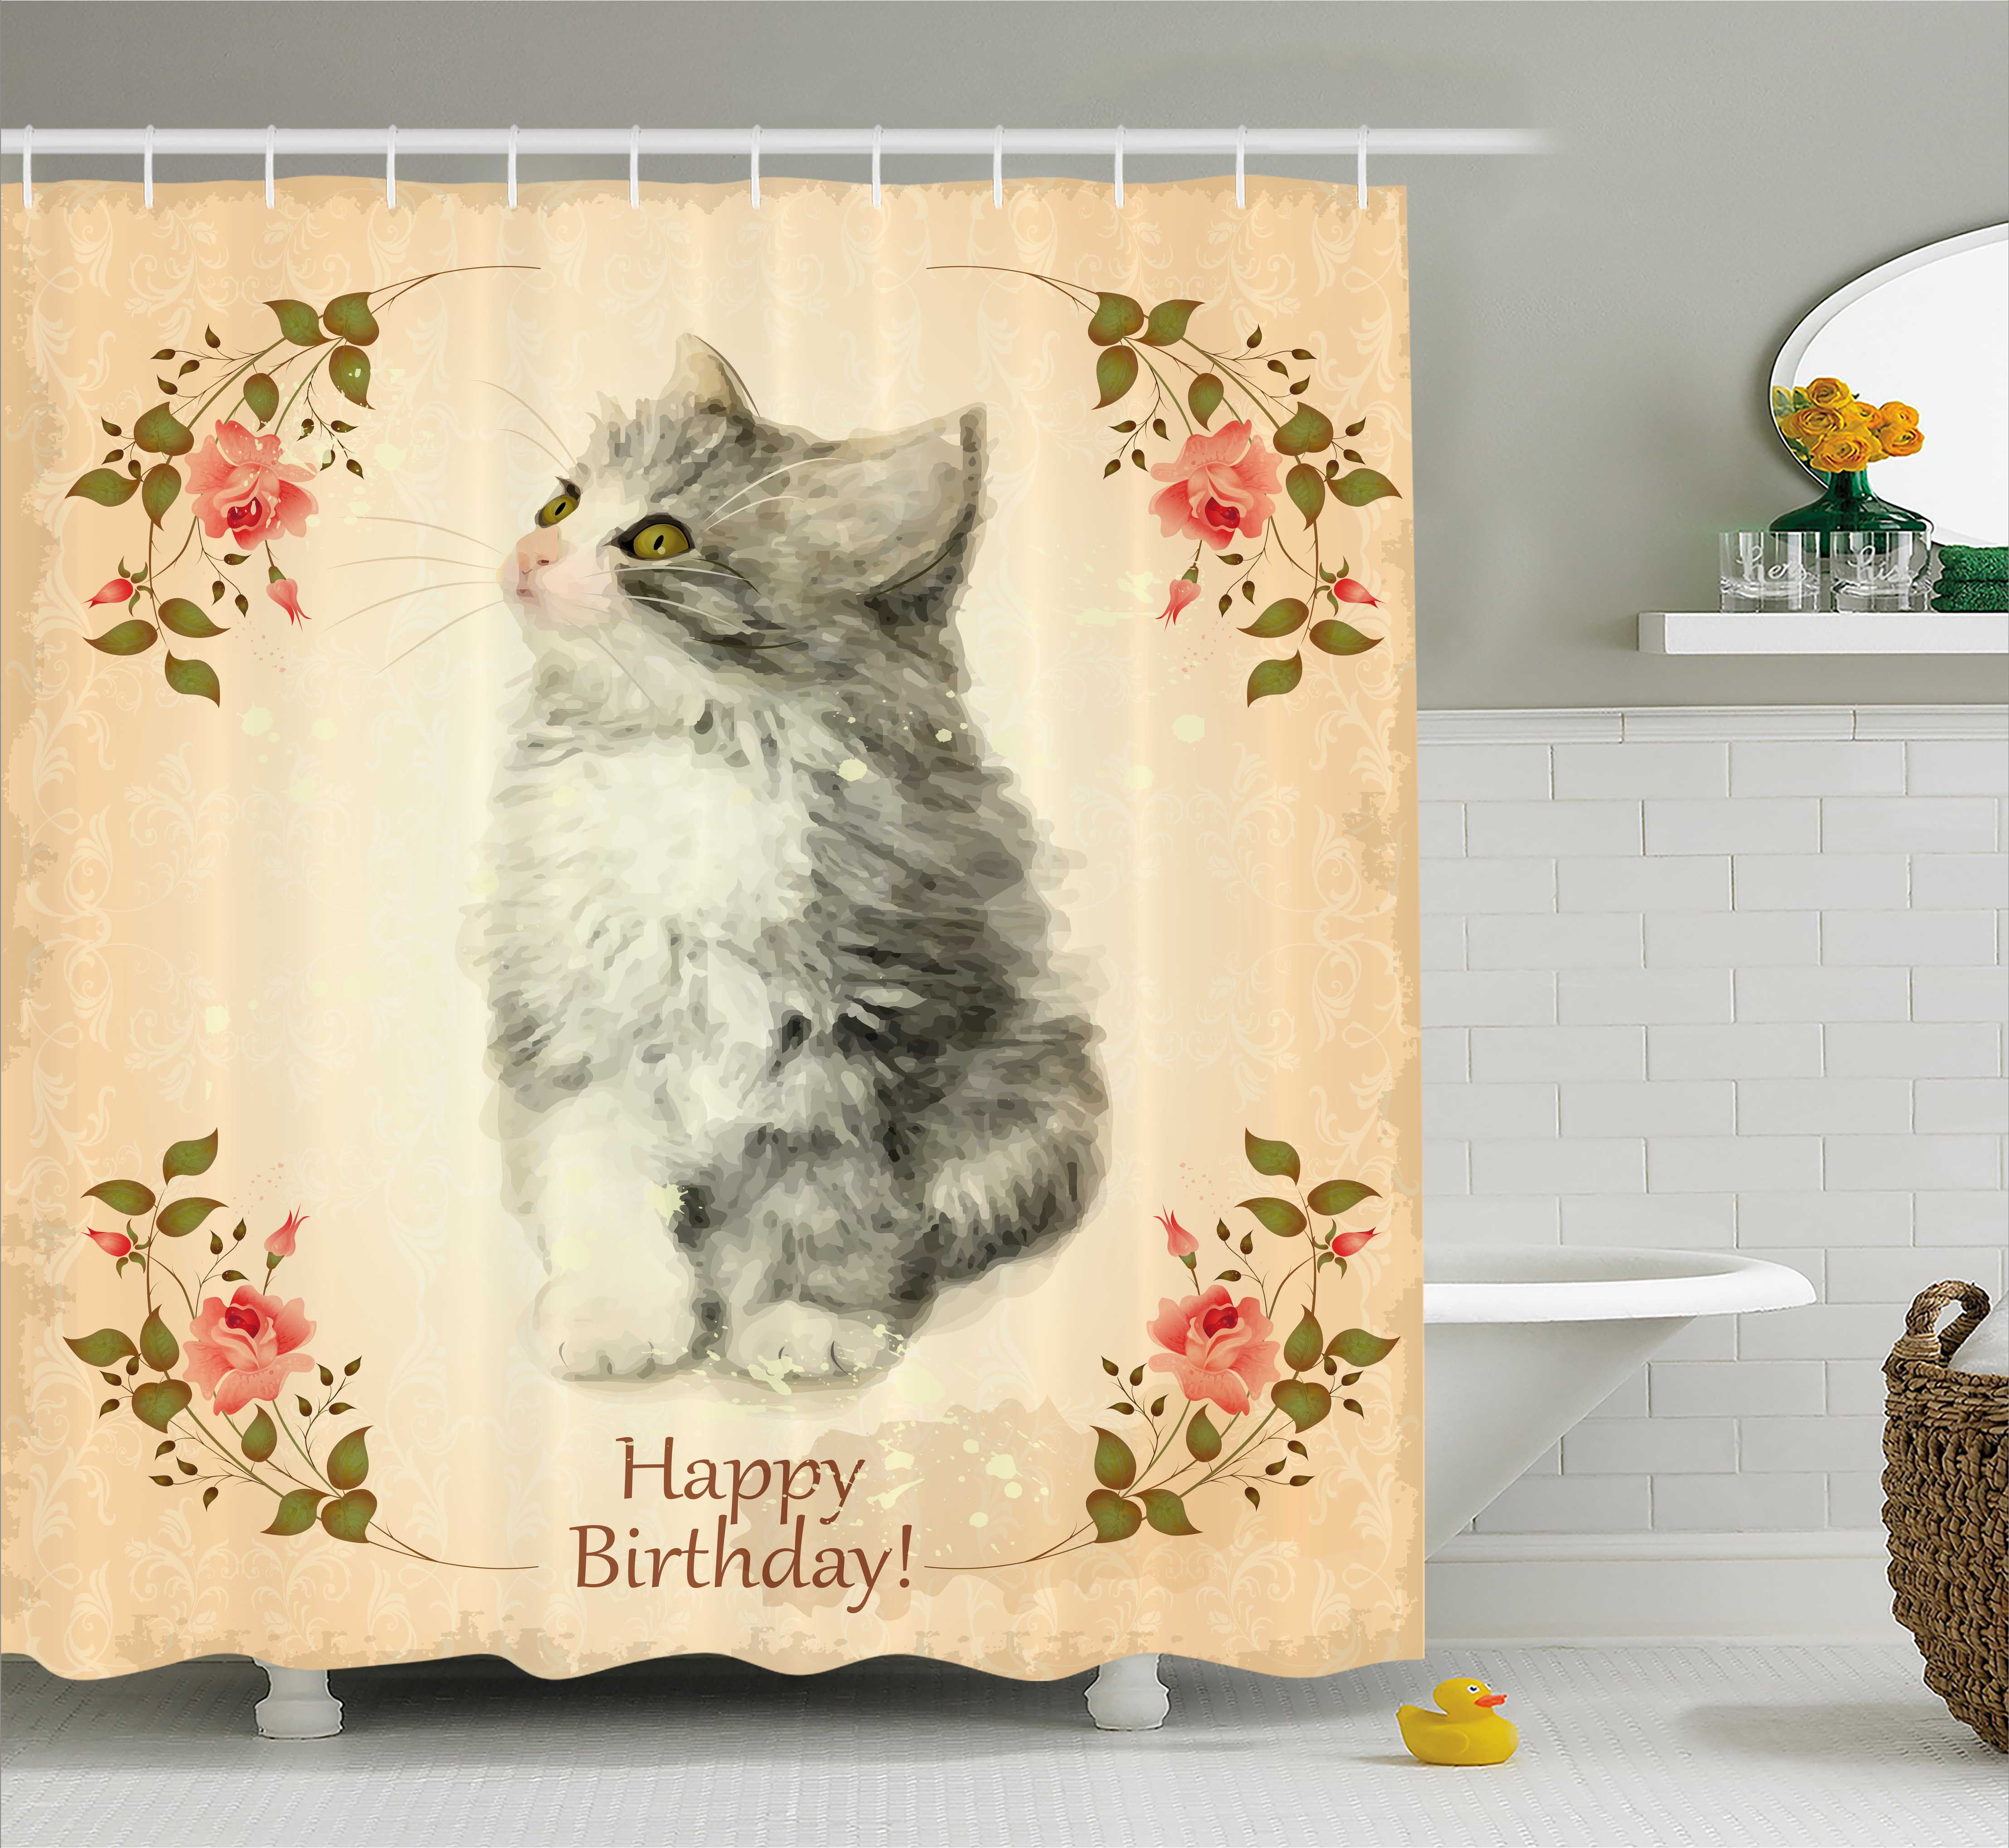 Birthday Decorations Shower Curtain, Adorable Fluffy Cat Rose Branches Greeting Card Inspired Design, Fabric Bathroom Set with Hooks, 69W X 70L Inches, Tan Grey Coral, by Ambesonne